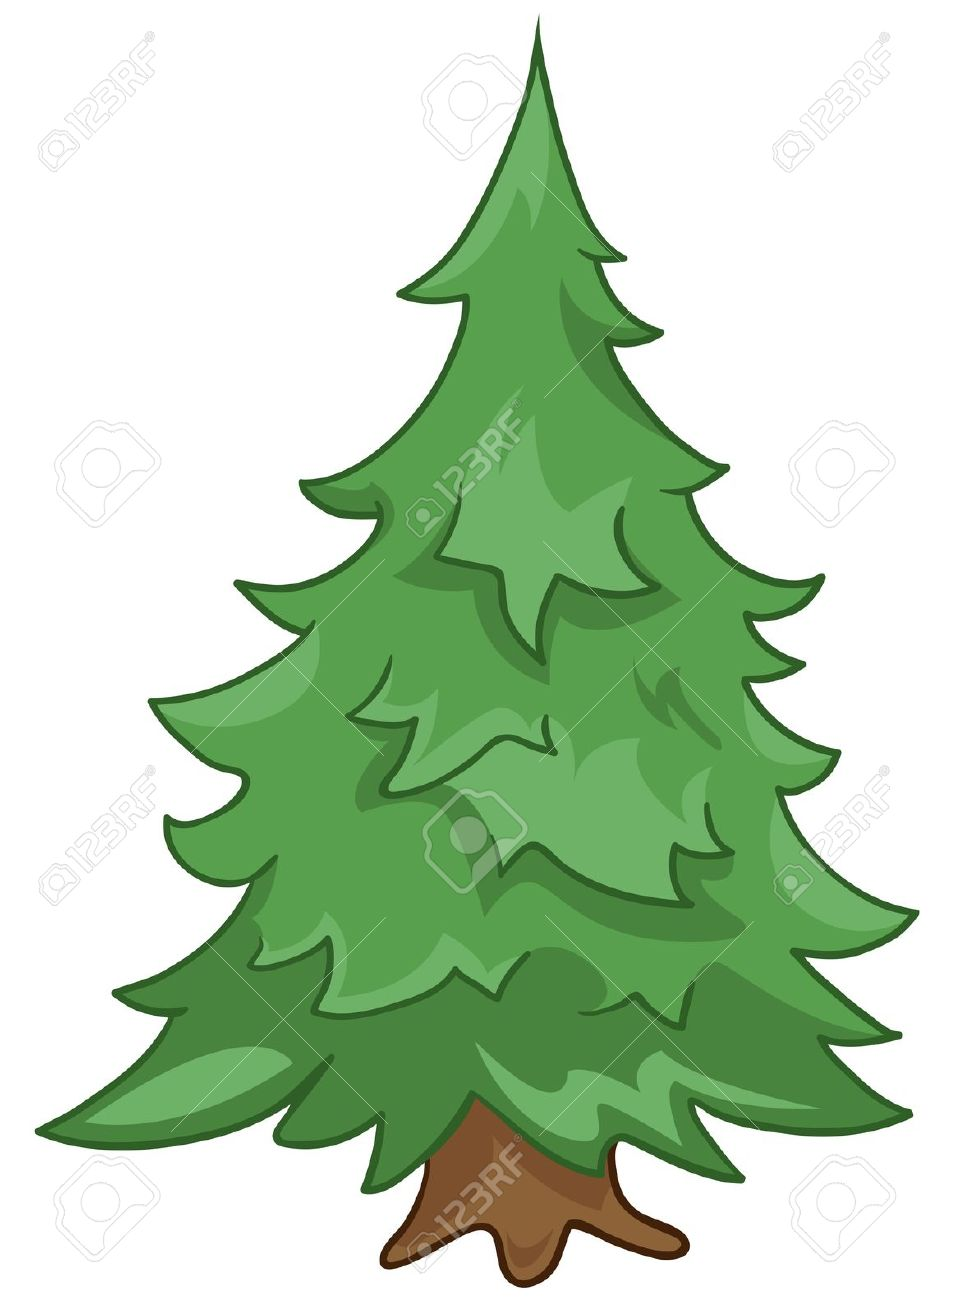 Cartoon Nature Tree Fir Royalty Free Cliparts, Vectors, And Stock.